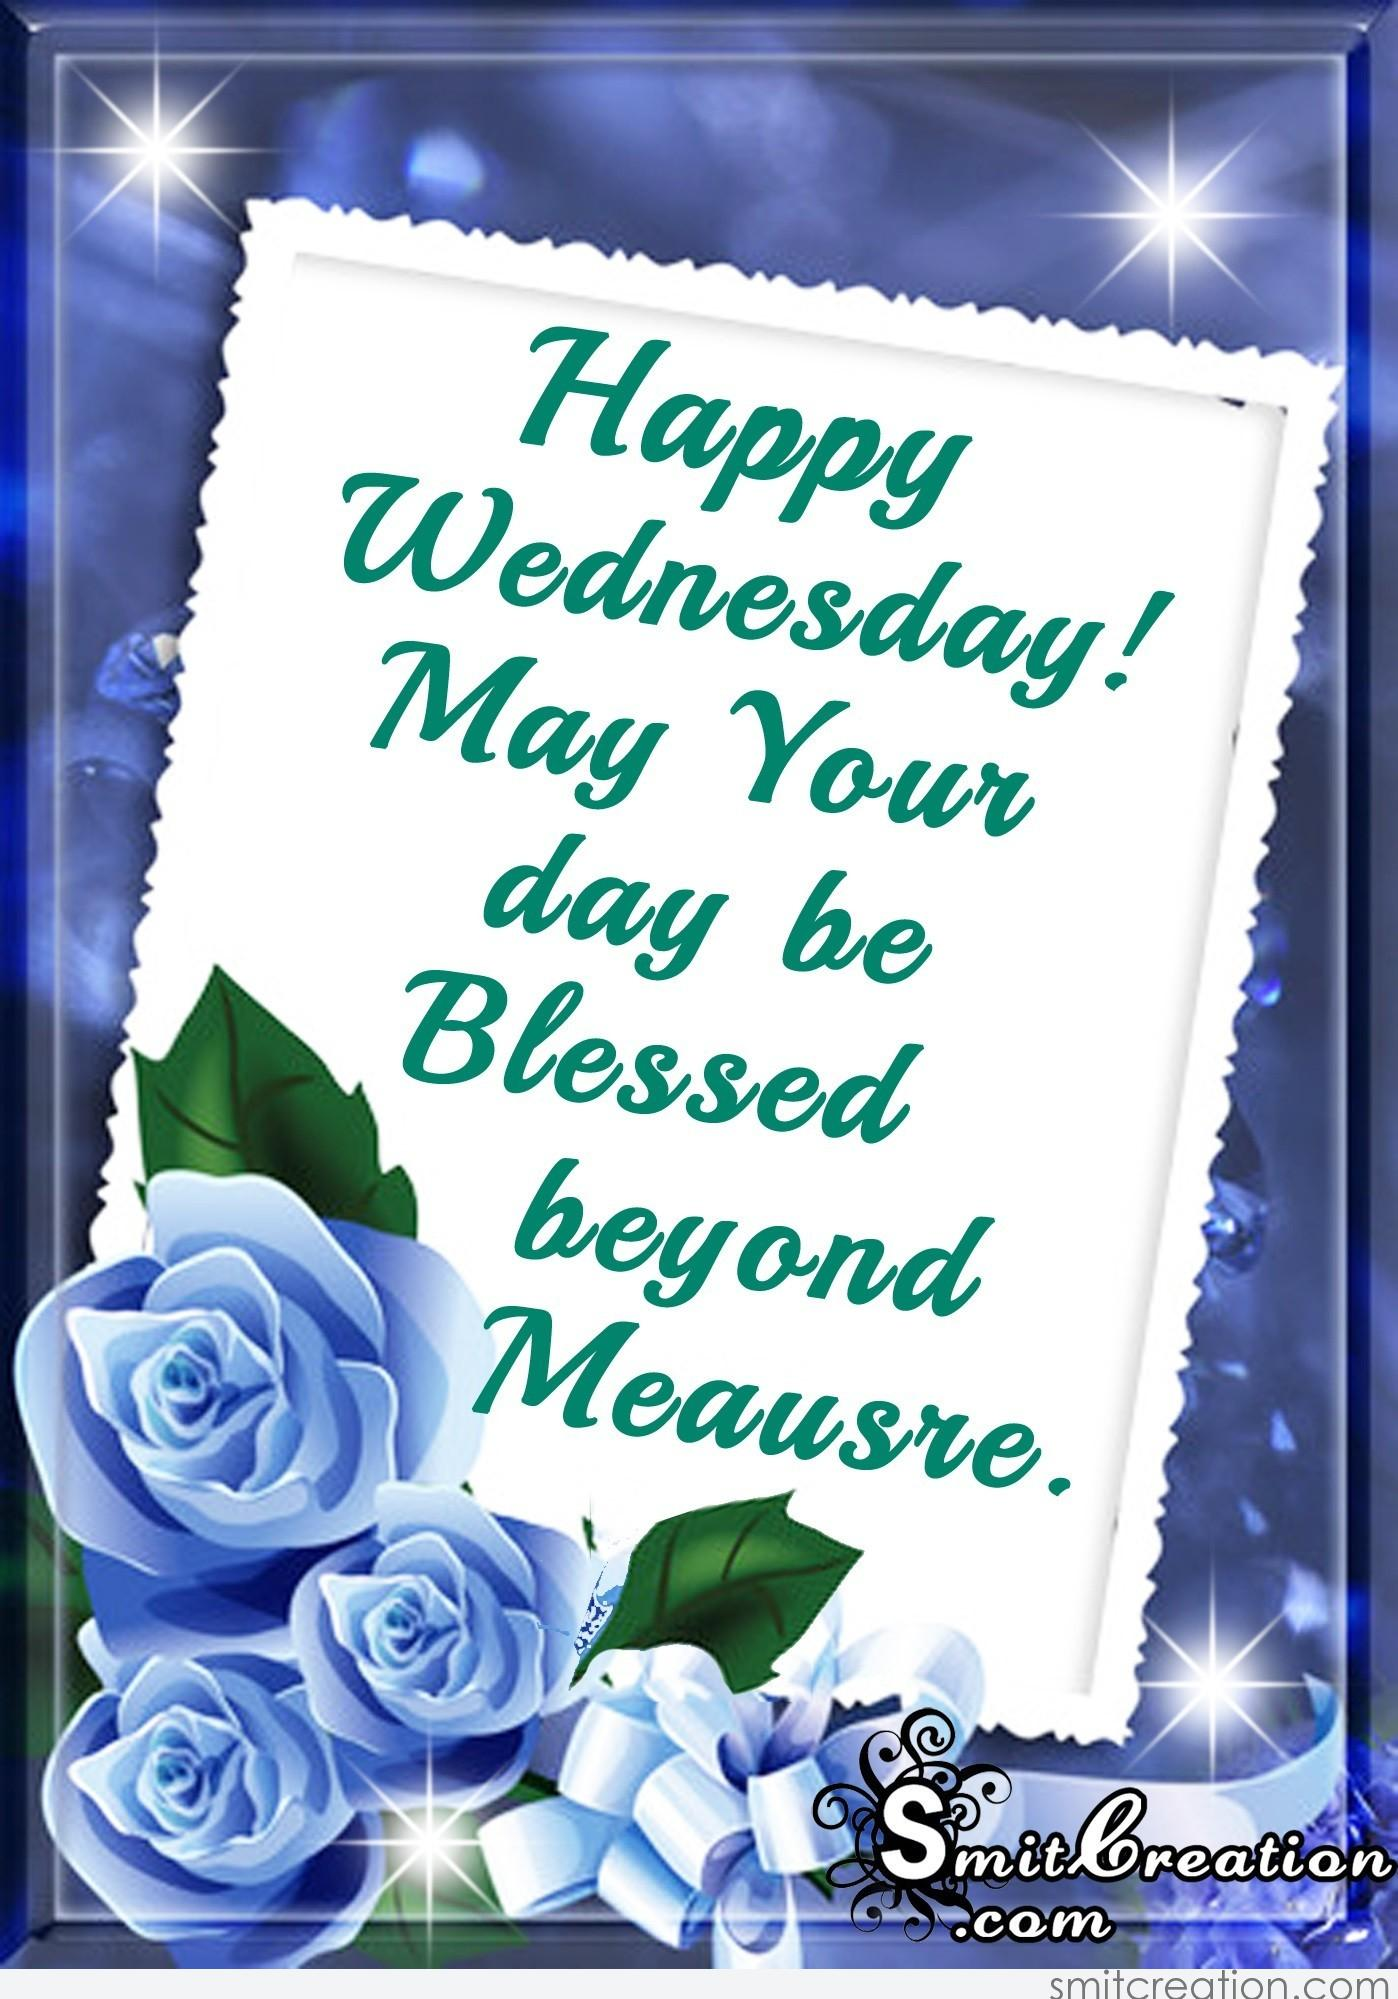 Happy Wednesday- May Your day be Blessed beyond Meausre